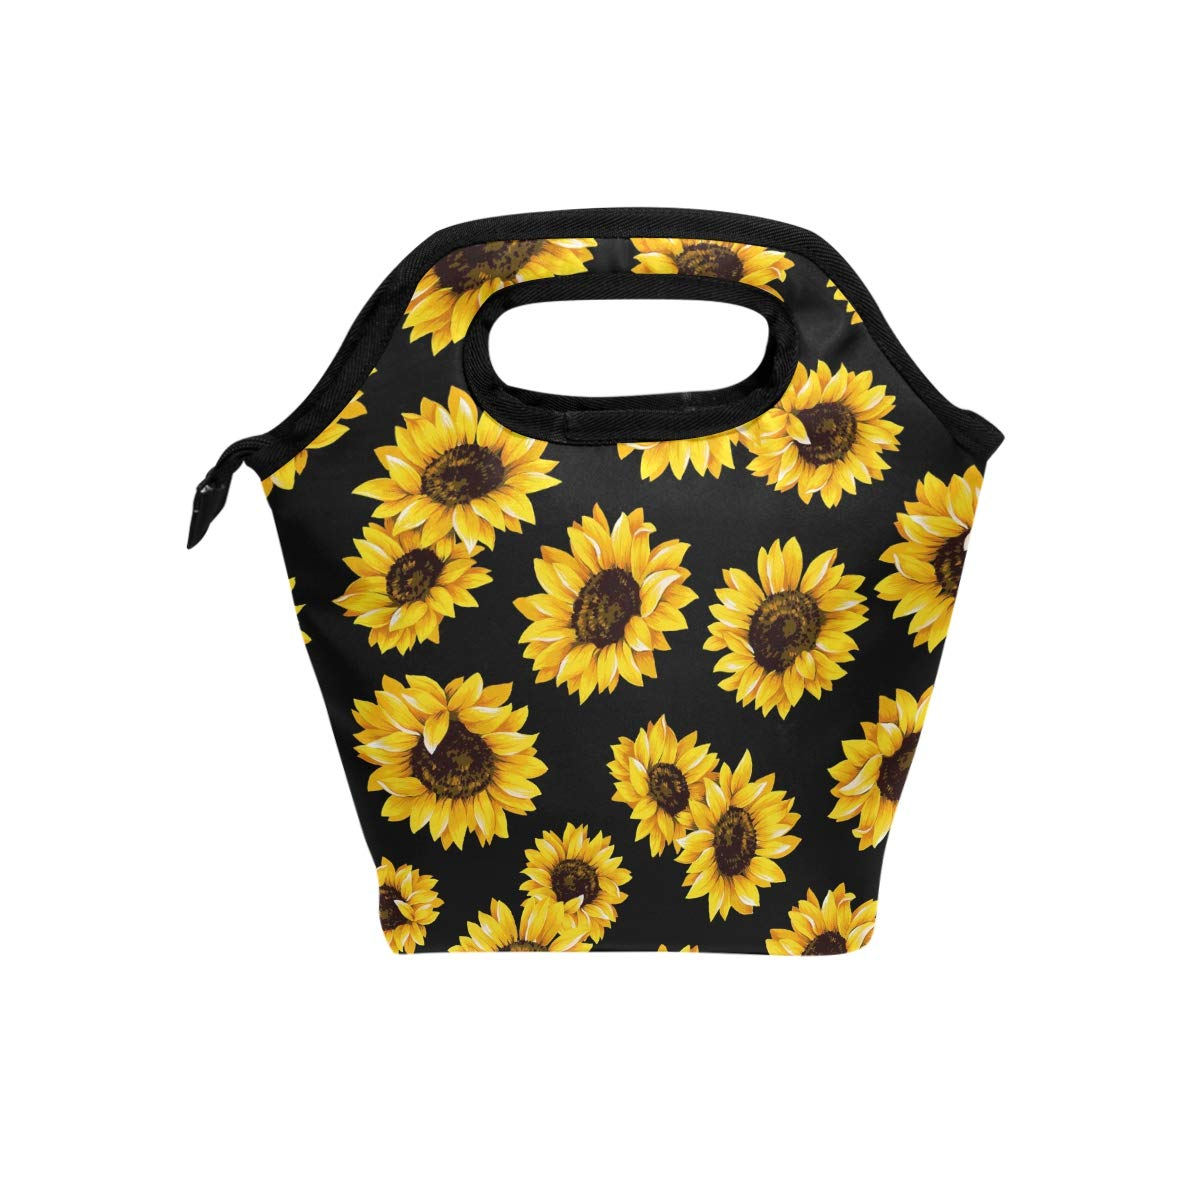 Floral Flower Lunch Boxes Lunchboxes Meal Prep Handbag for Outdoors School Office Naanle Sunflower Insulated Zipper Lunch Bag Cooler Tote Bag for Adult Teens Kids Girls Boys Men Women